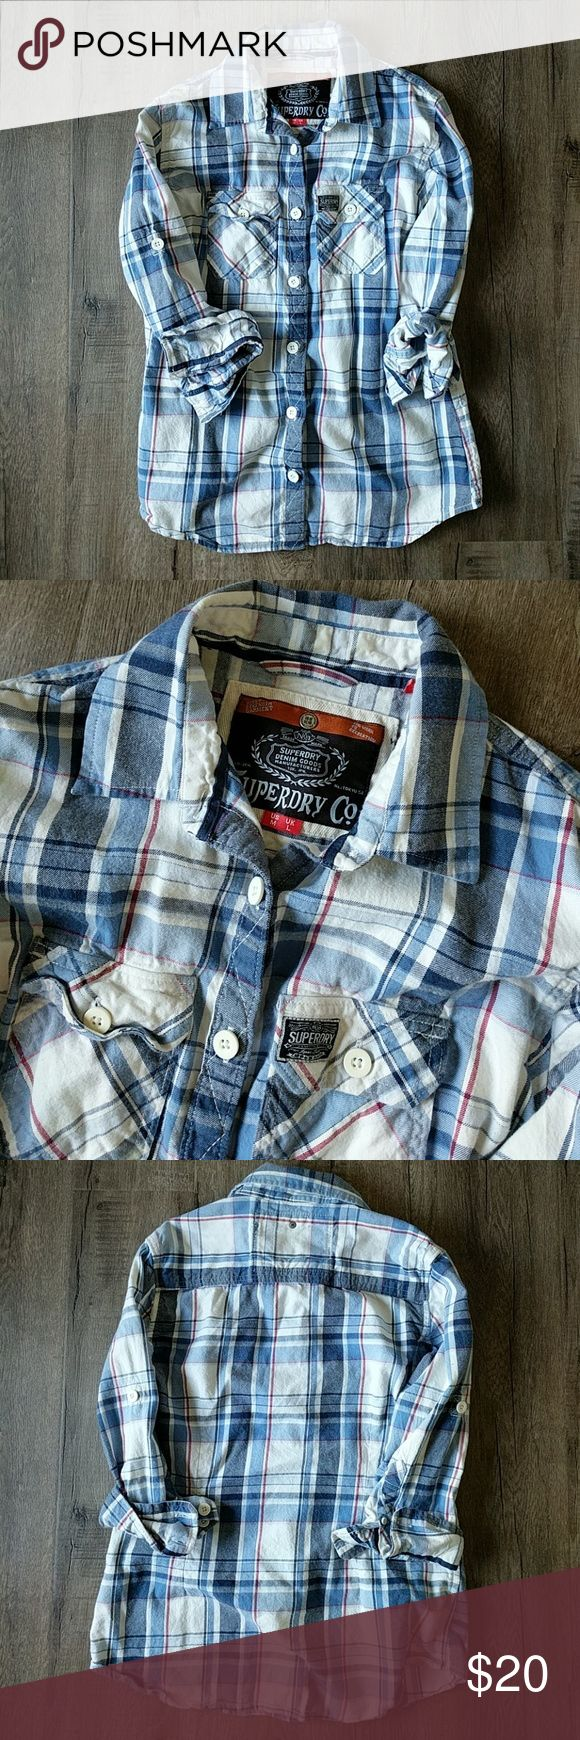 SUPERDRY boyfriend check shirt Blue and white plaid shirt 3/4 quarter sleeve  In excellent like new condition! Superdry Tops Button Down Shirts